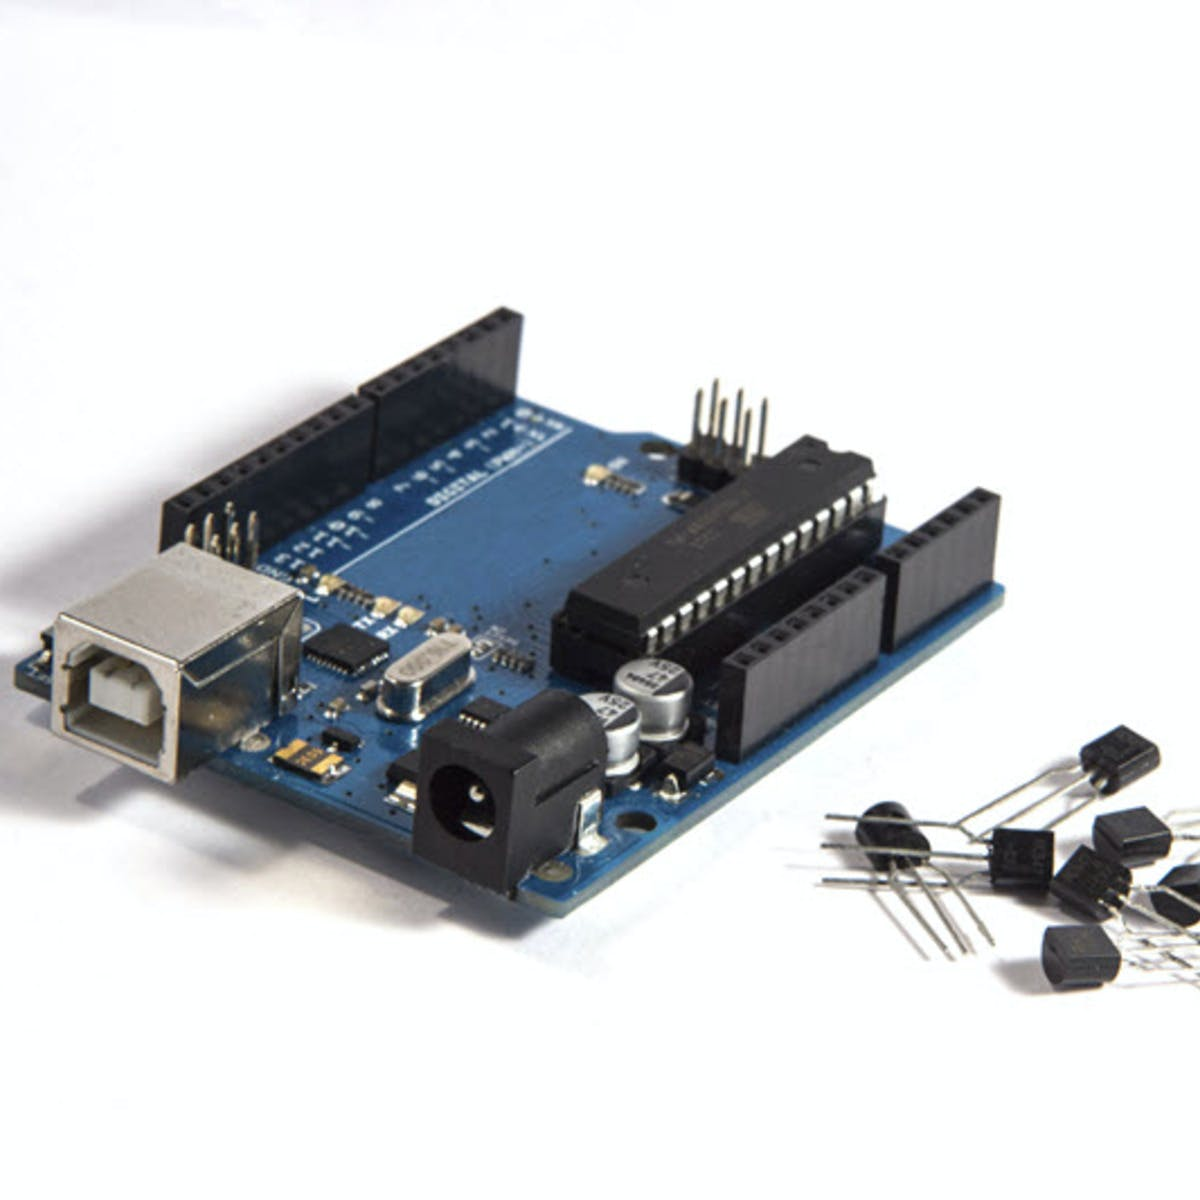 Interfacing with the Arduino